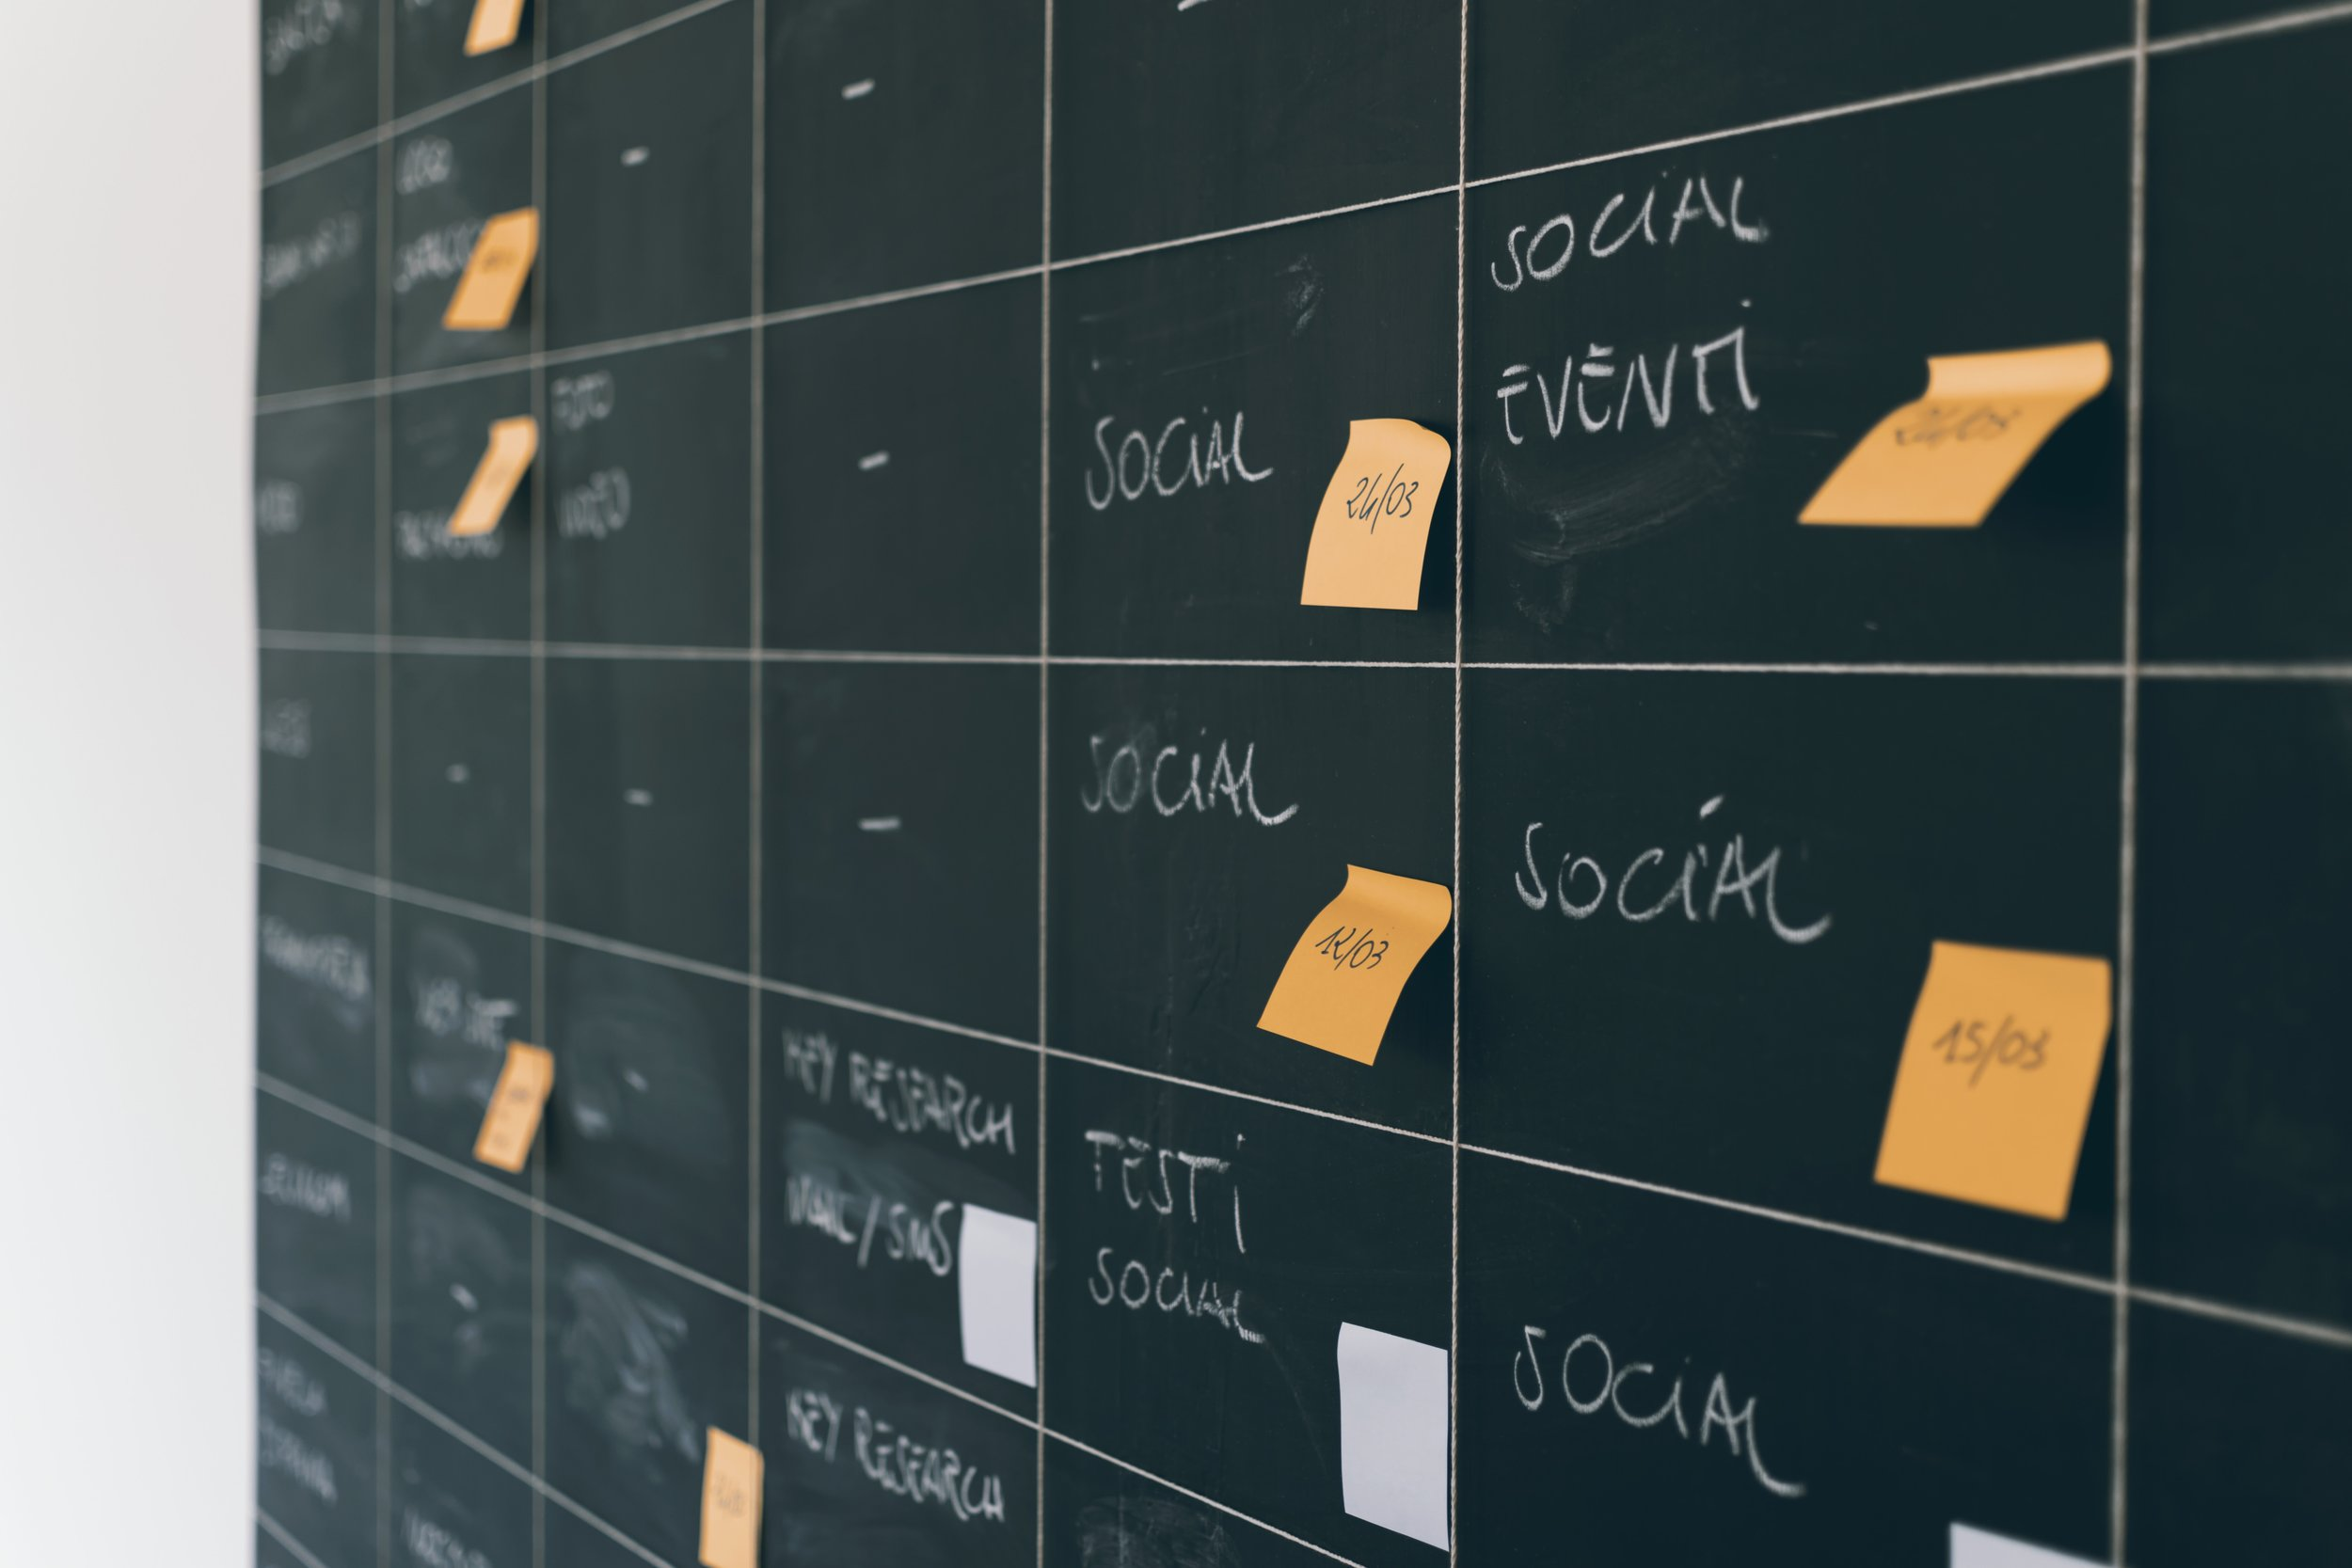 Project management tools are also a great way to stay organized and on top of a project's timeline.